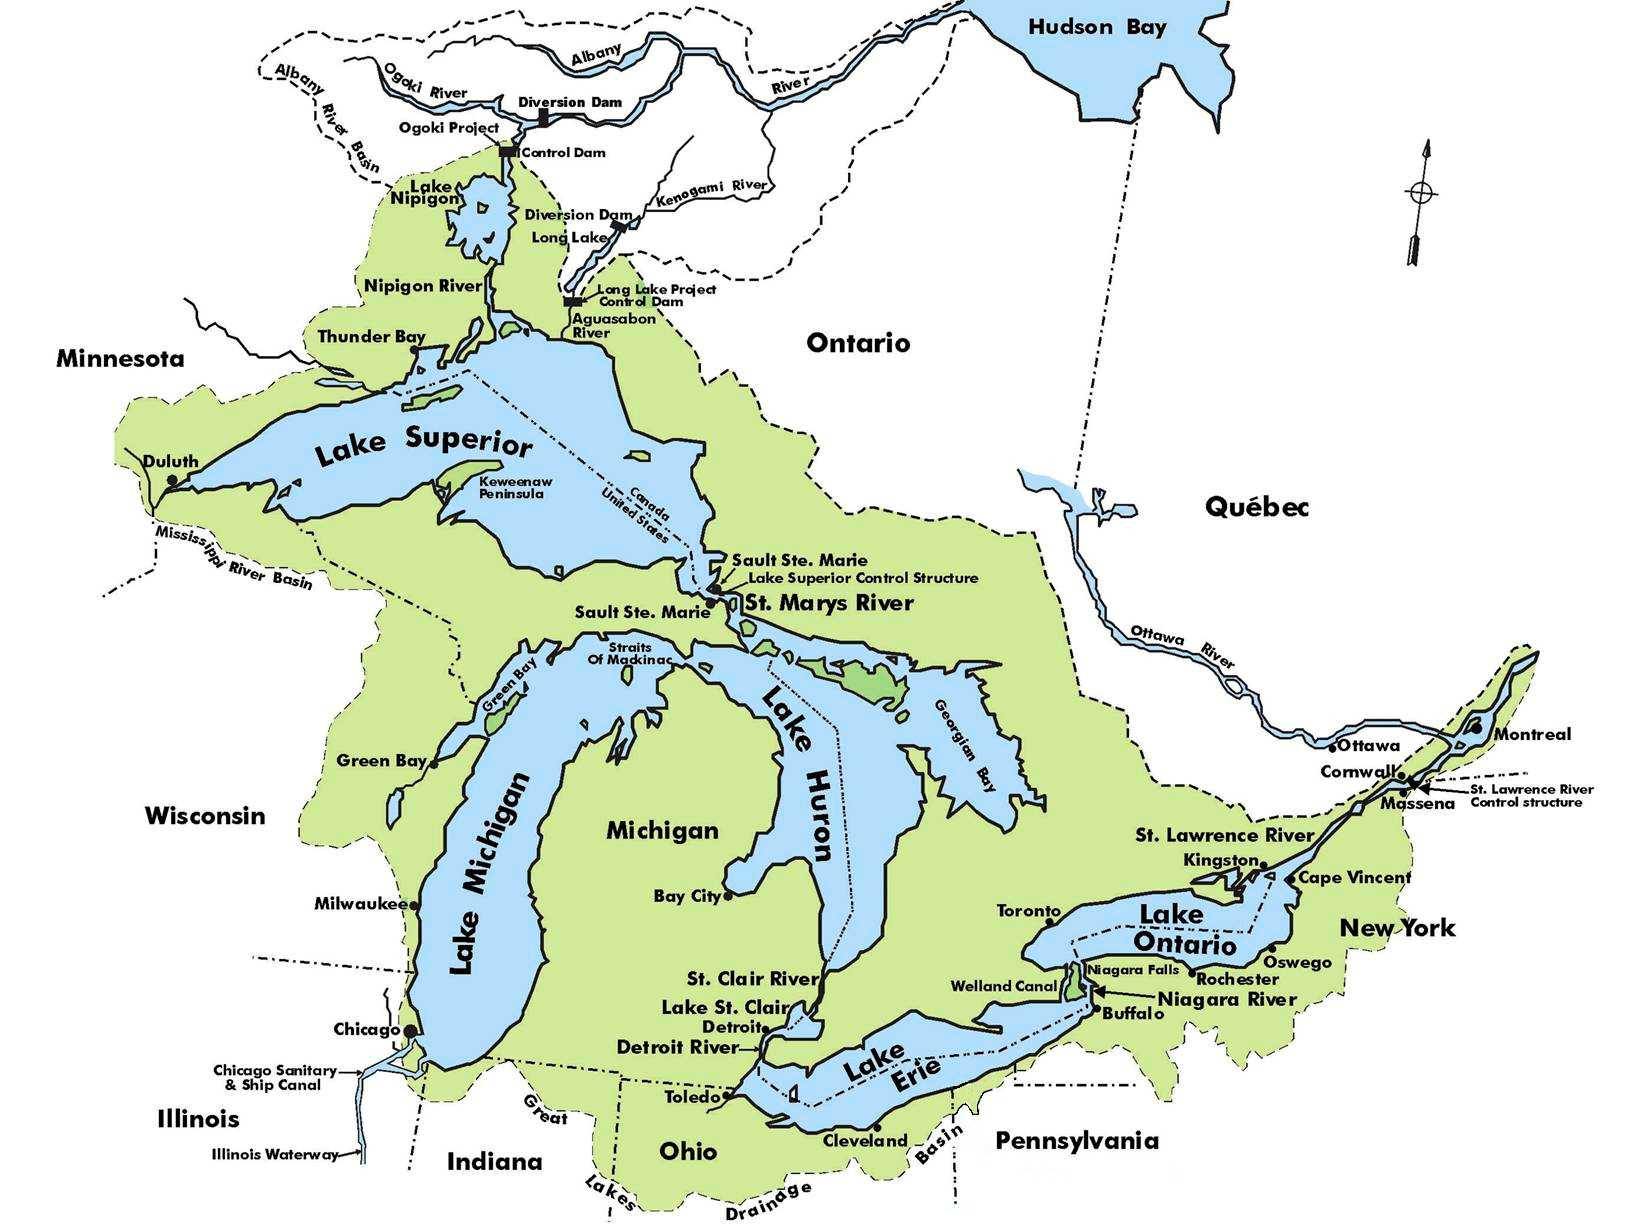 United States Rivers And Lakes Map Mapsofnet US Rivers Map - Map of northeast us rivers